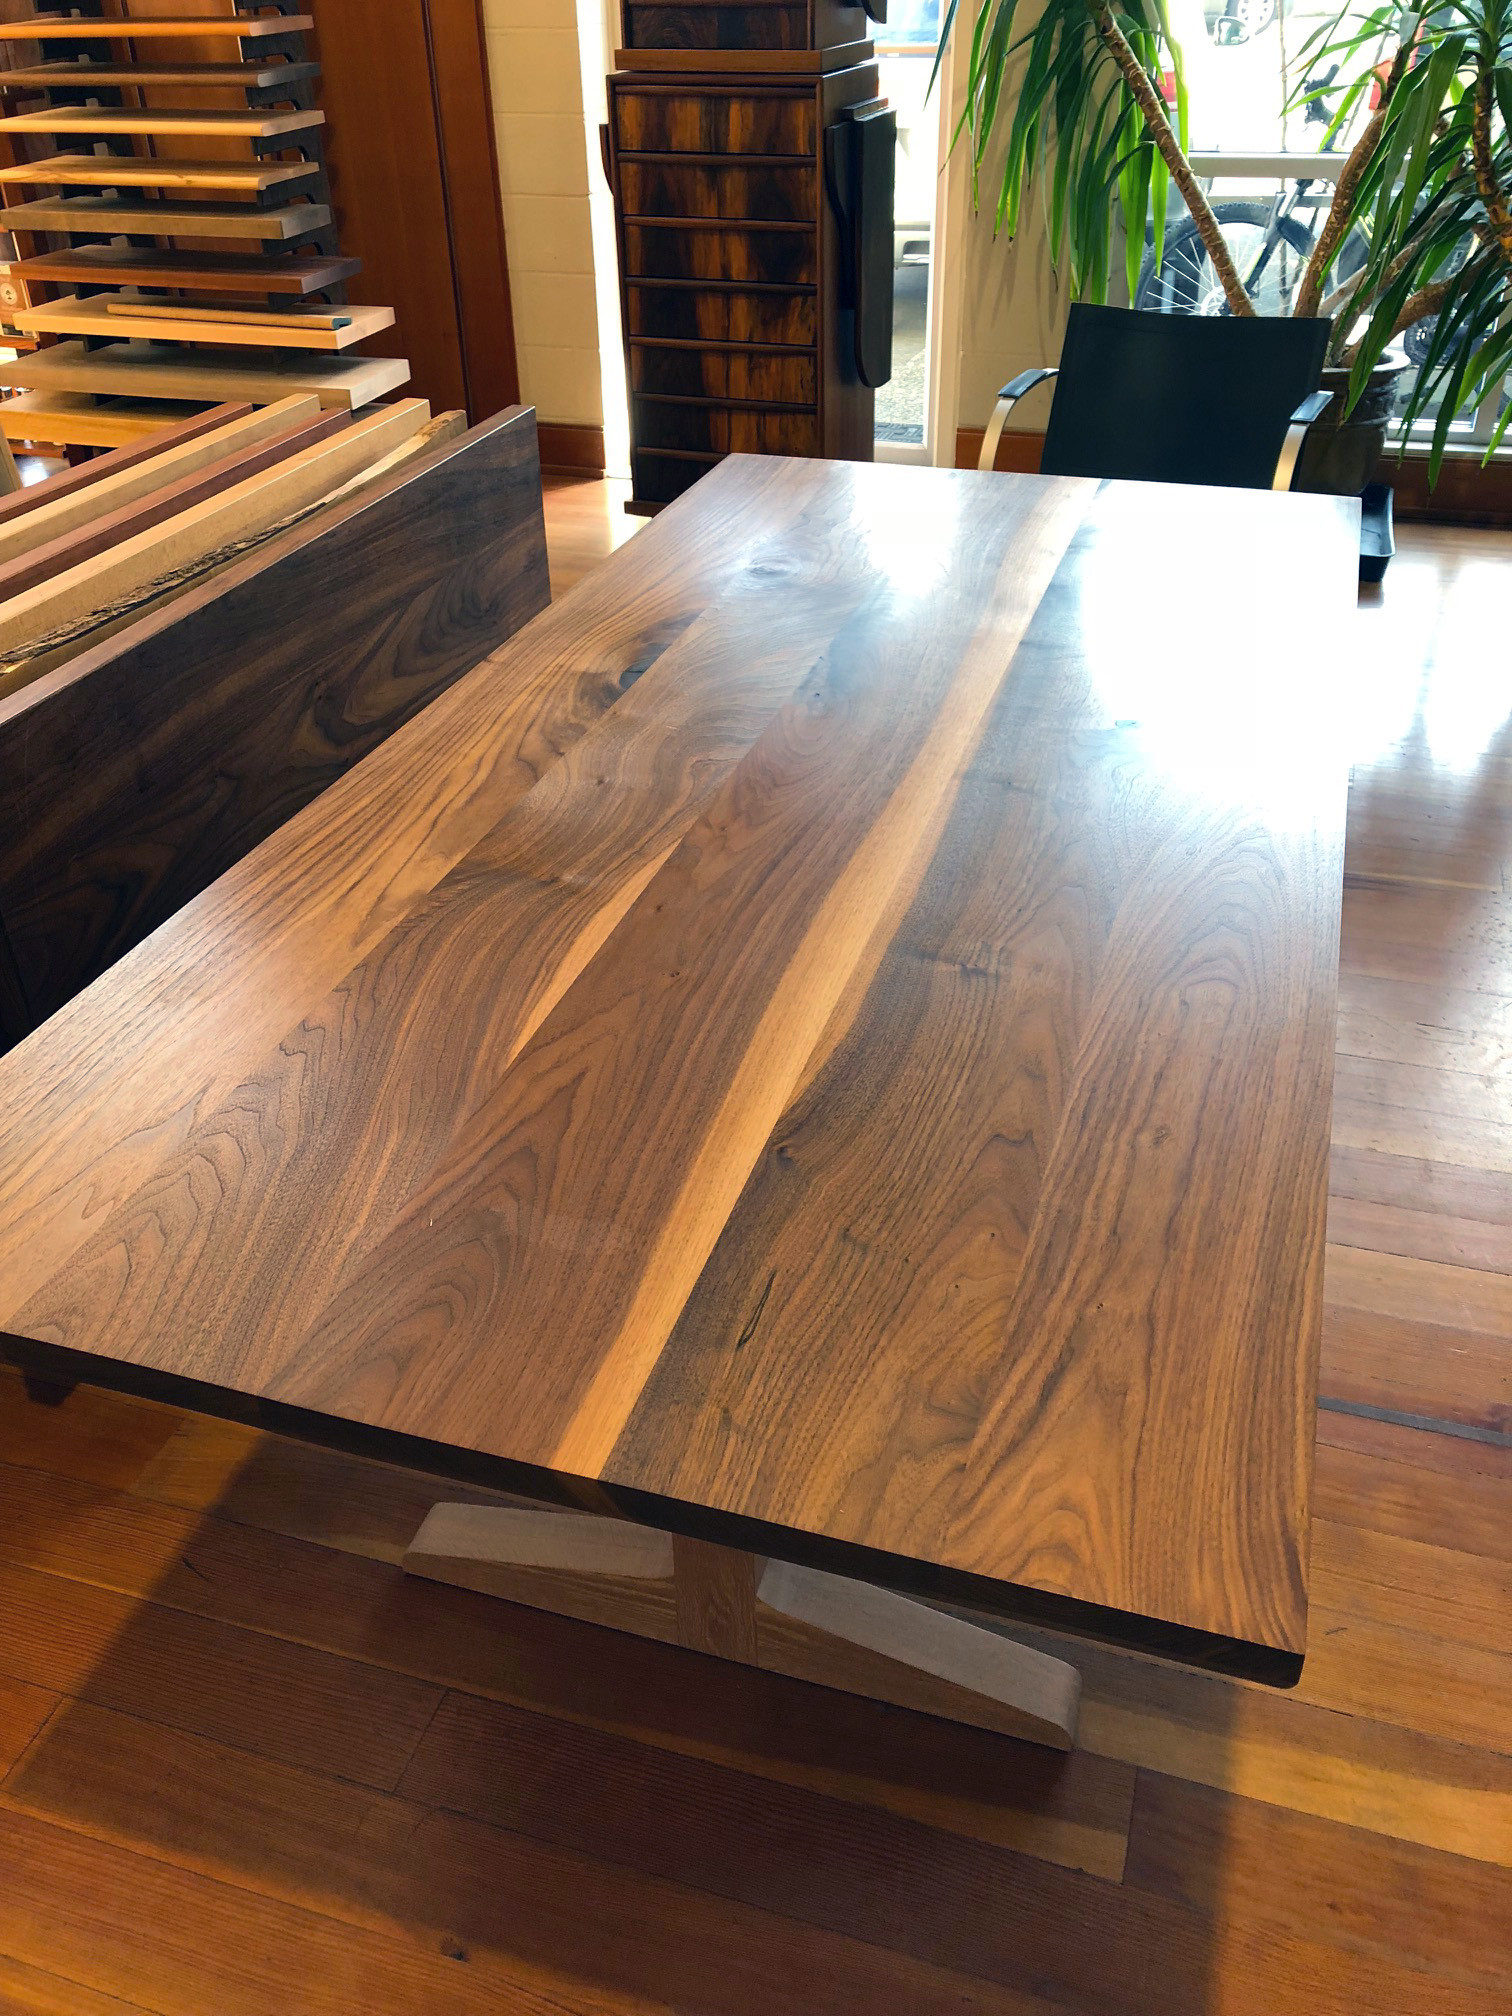 hardwood flooring layered stain samples maple of inspiration west wind hardwood intended for black walnut table